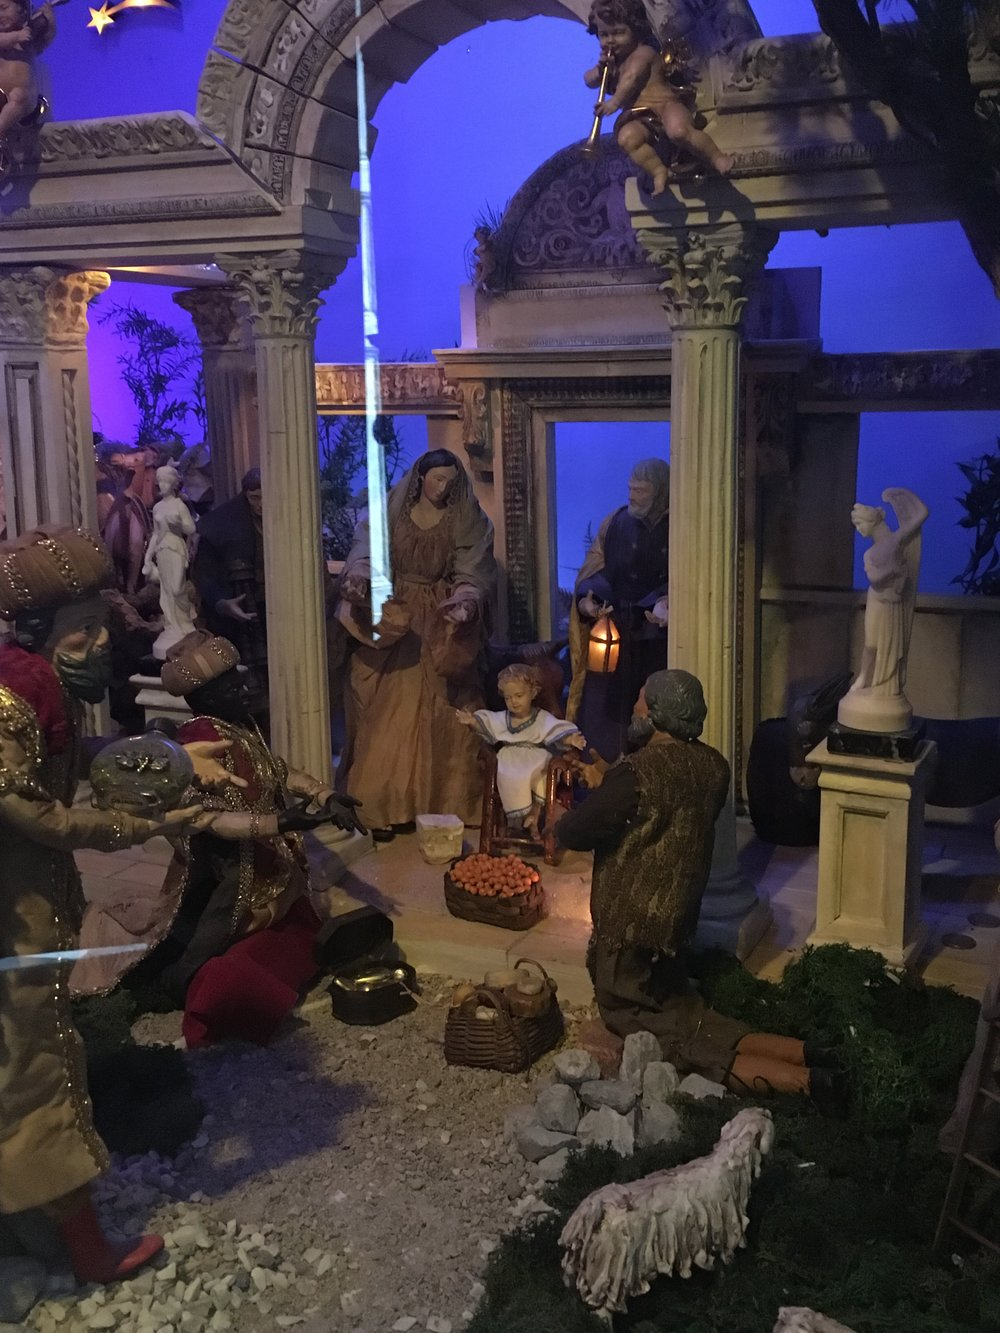 A small portion of the presepe at the church of San Salvatore in Lucca